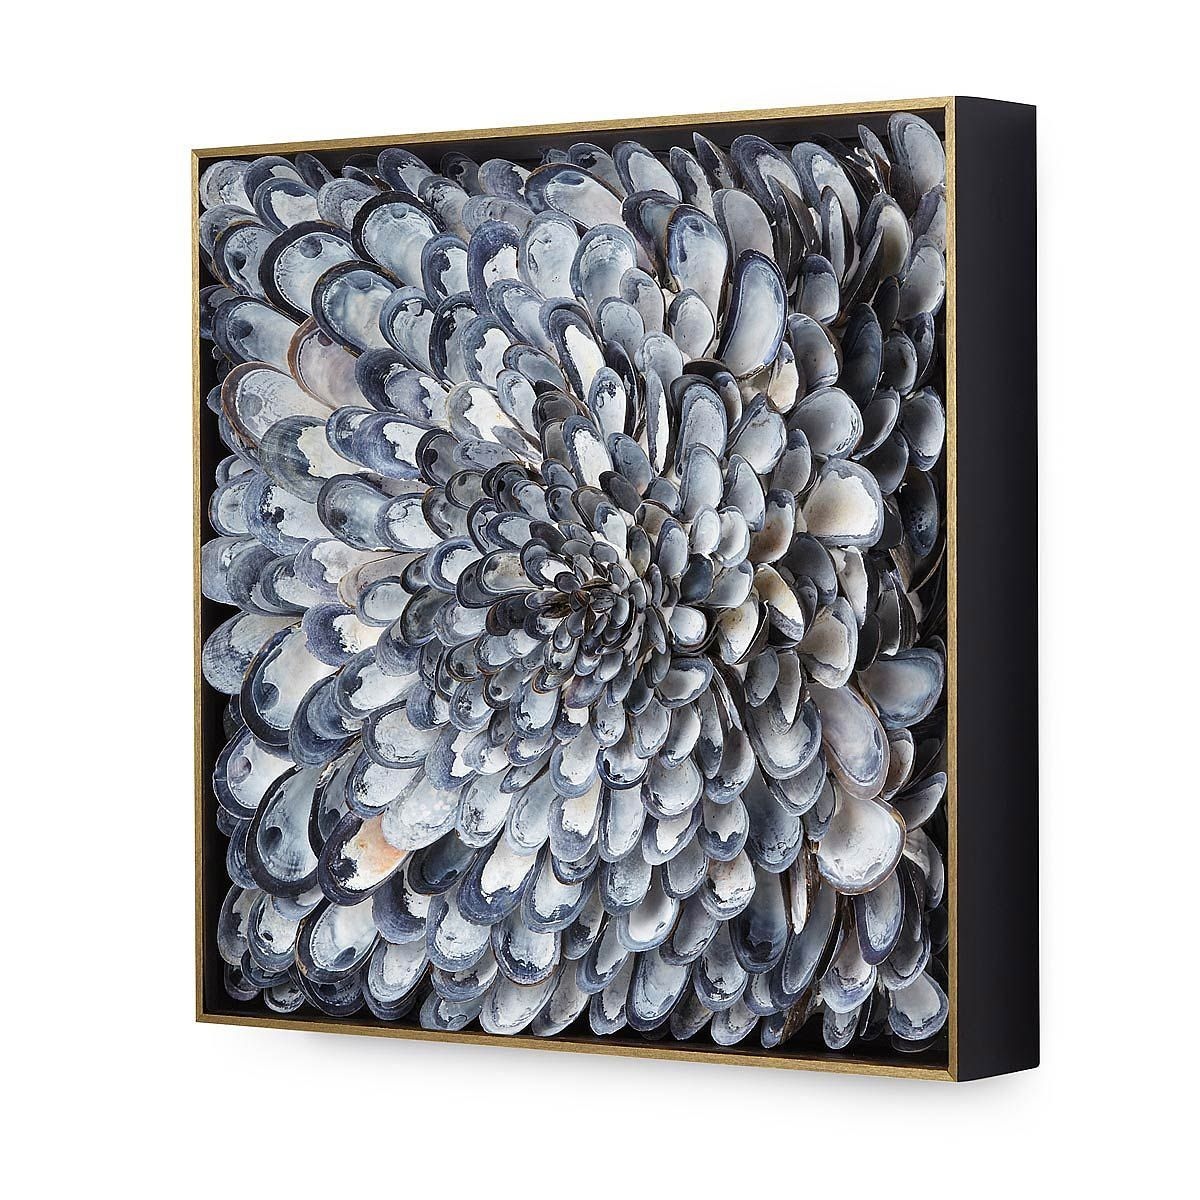 Infinite Mussels Wall Sculpture | shell art -   12 mussel shell crafts